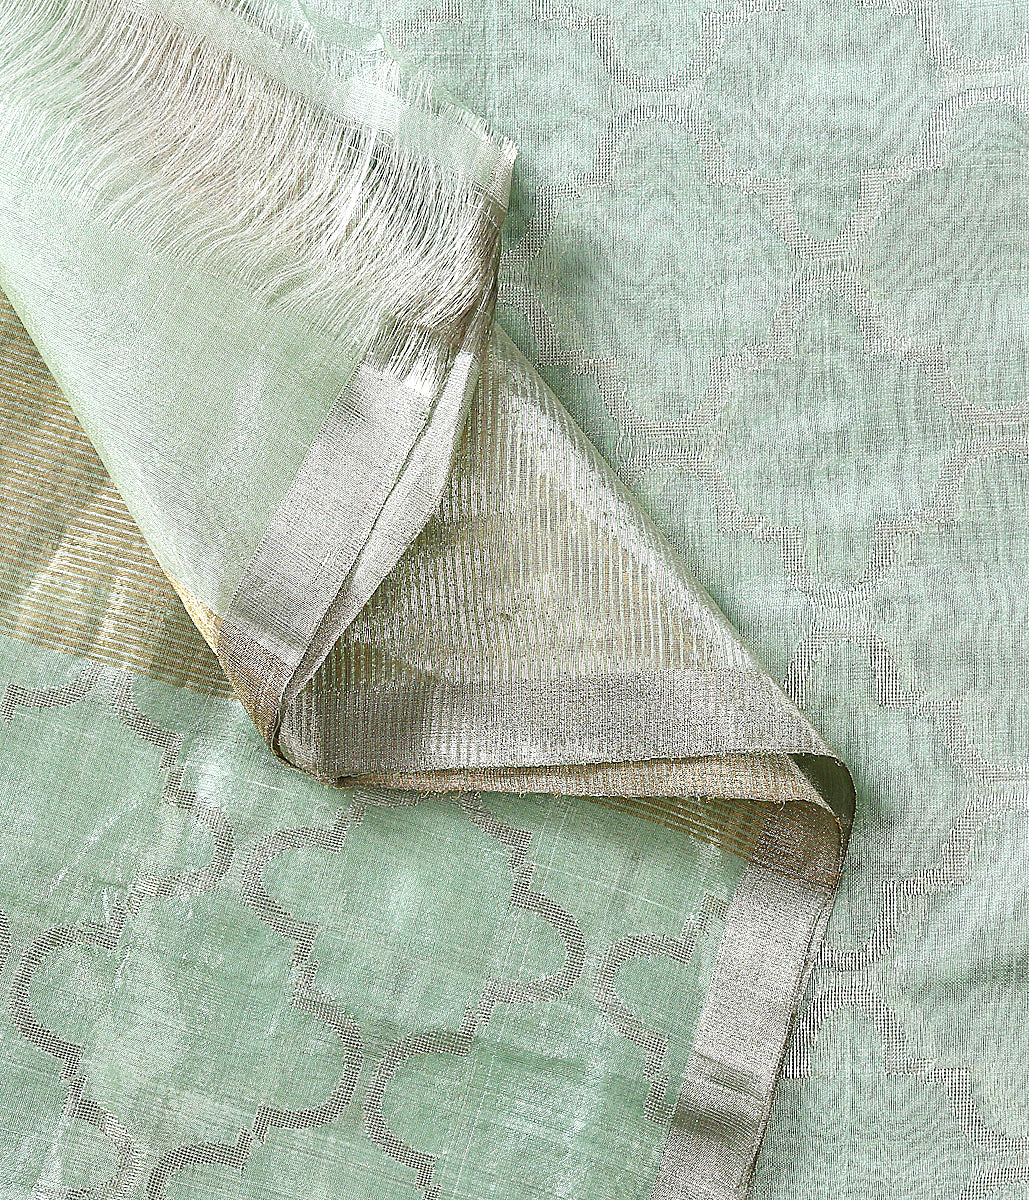 Handwoven Chanderi silk dupatta in sea green woven with rich silver zari